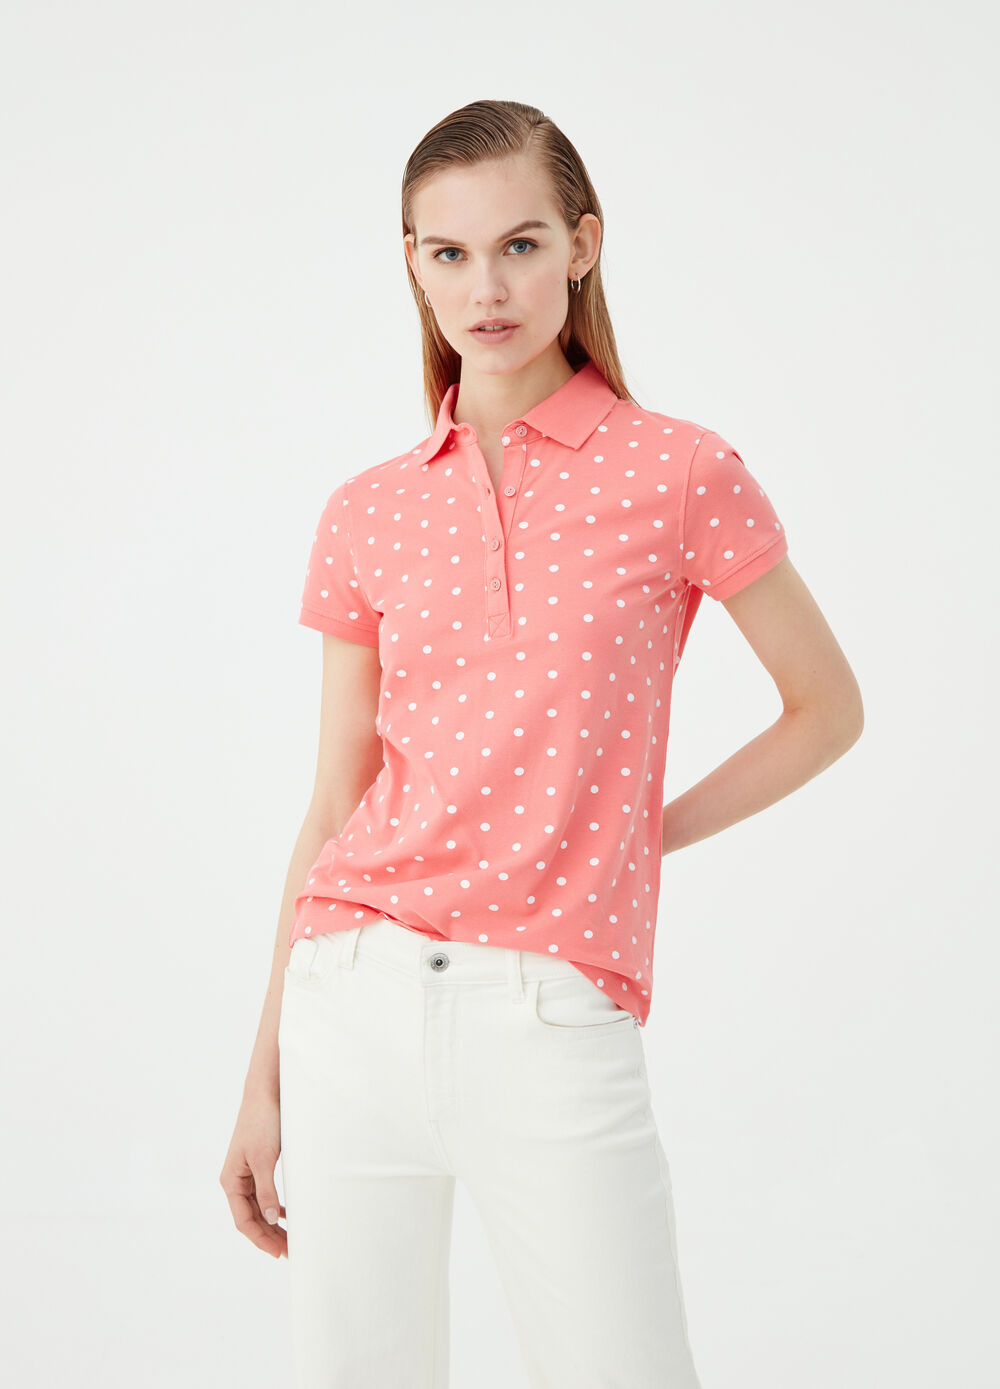 Organic cotton polo shirt with polka dot pattern